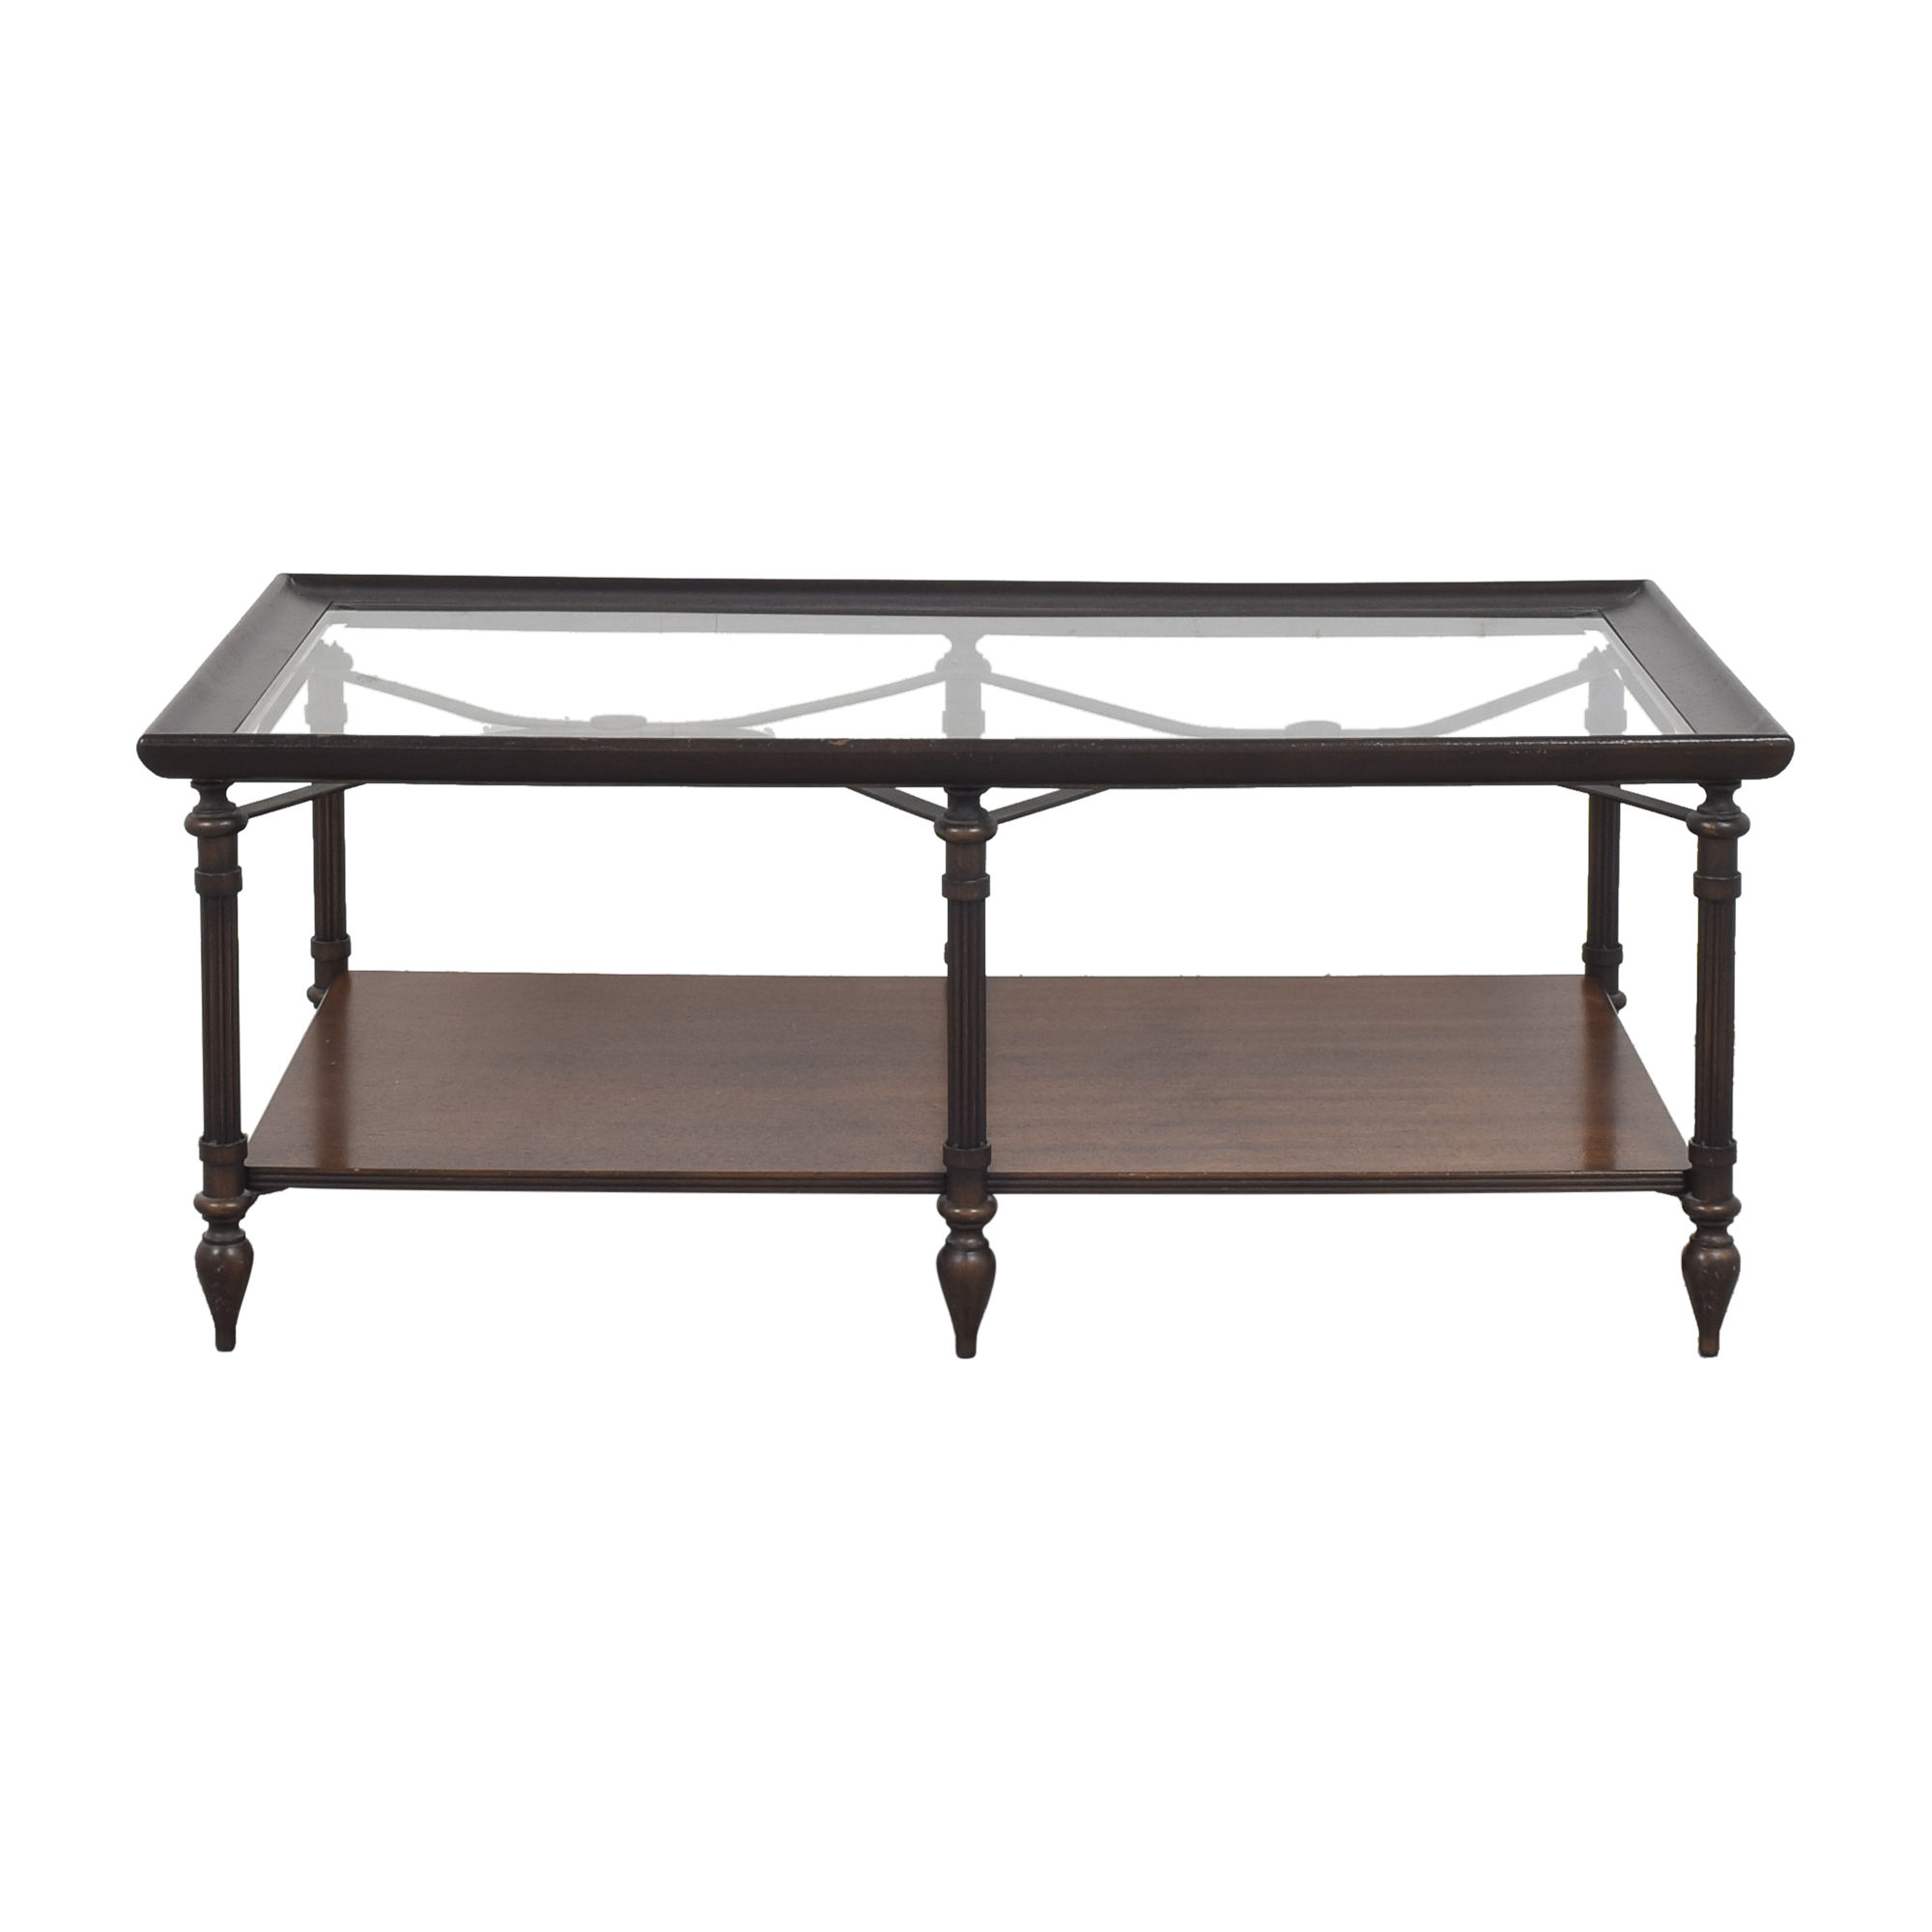 Tiered Coffee Table / Tables